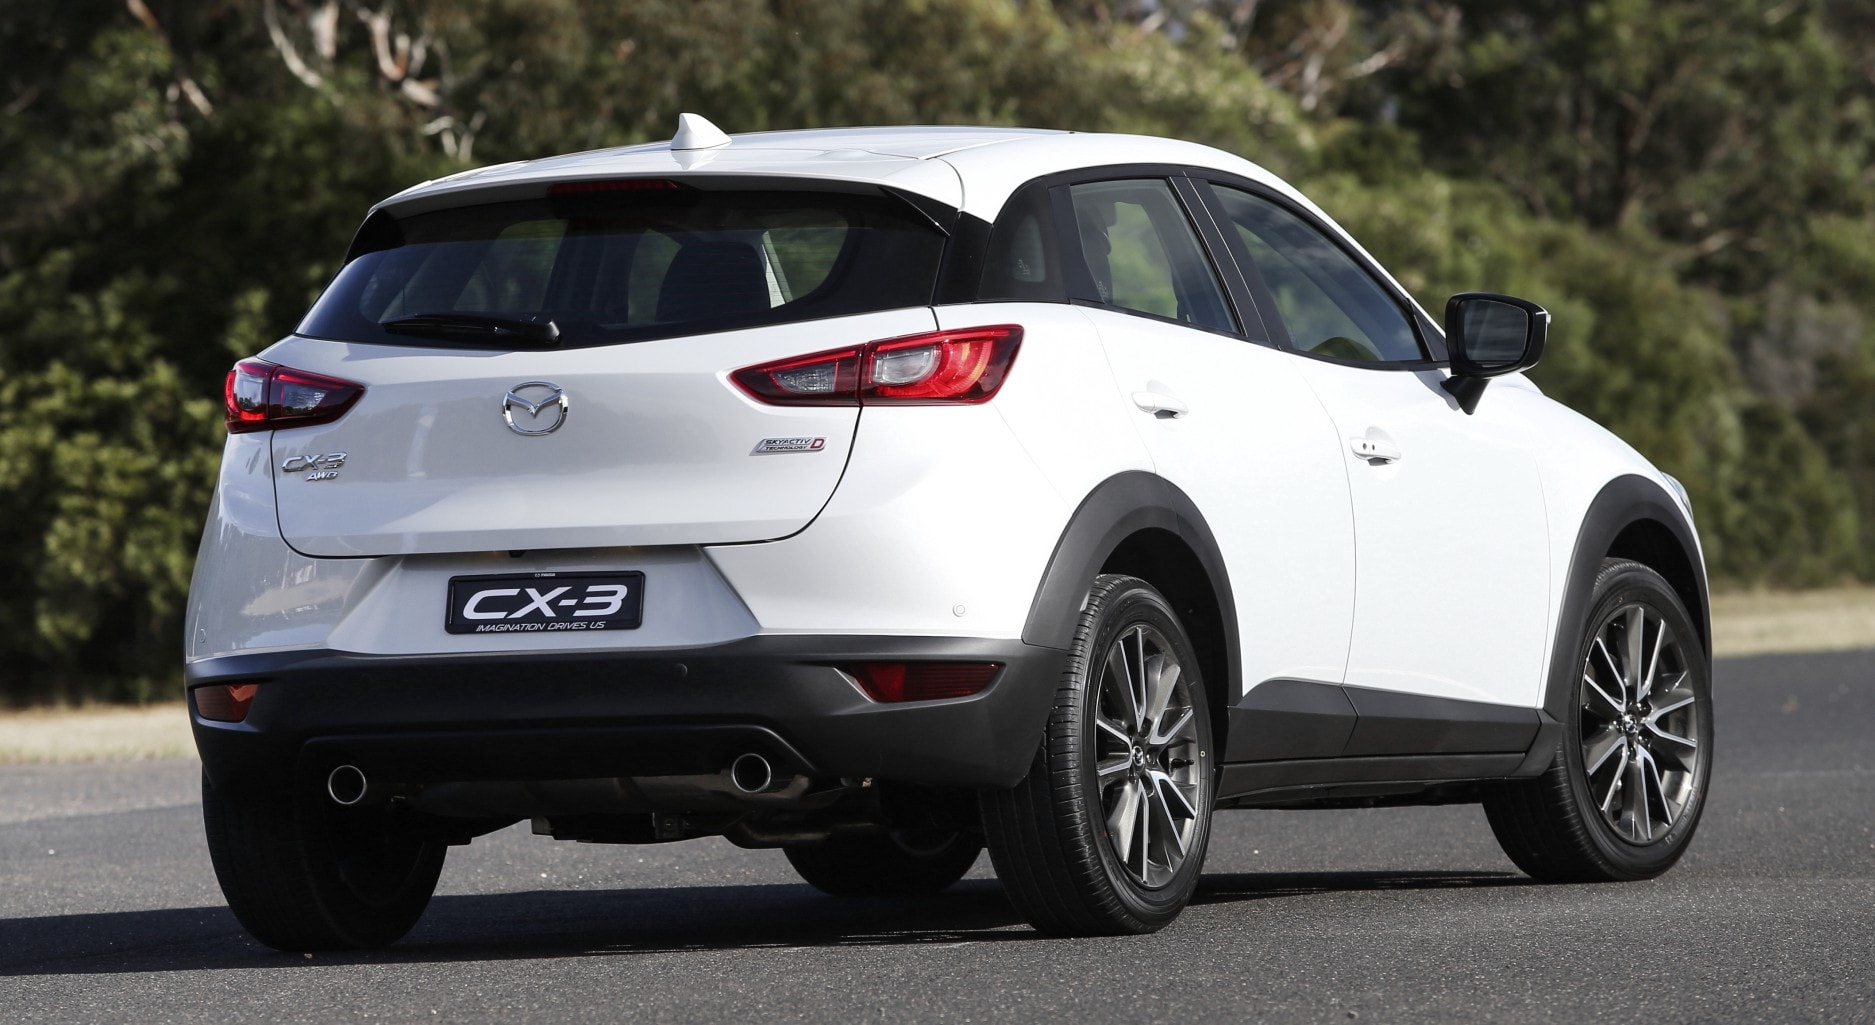 Mazda CX-3 HD pictures